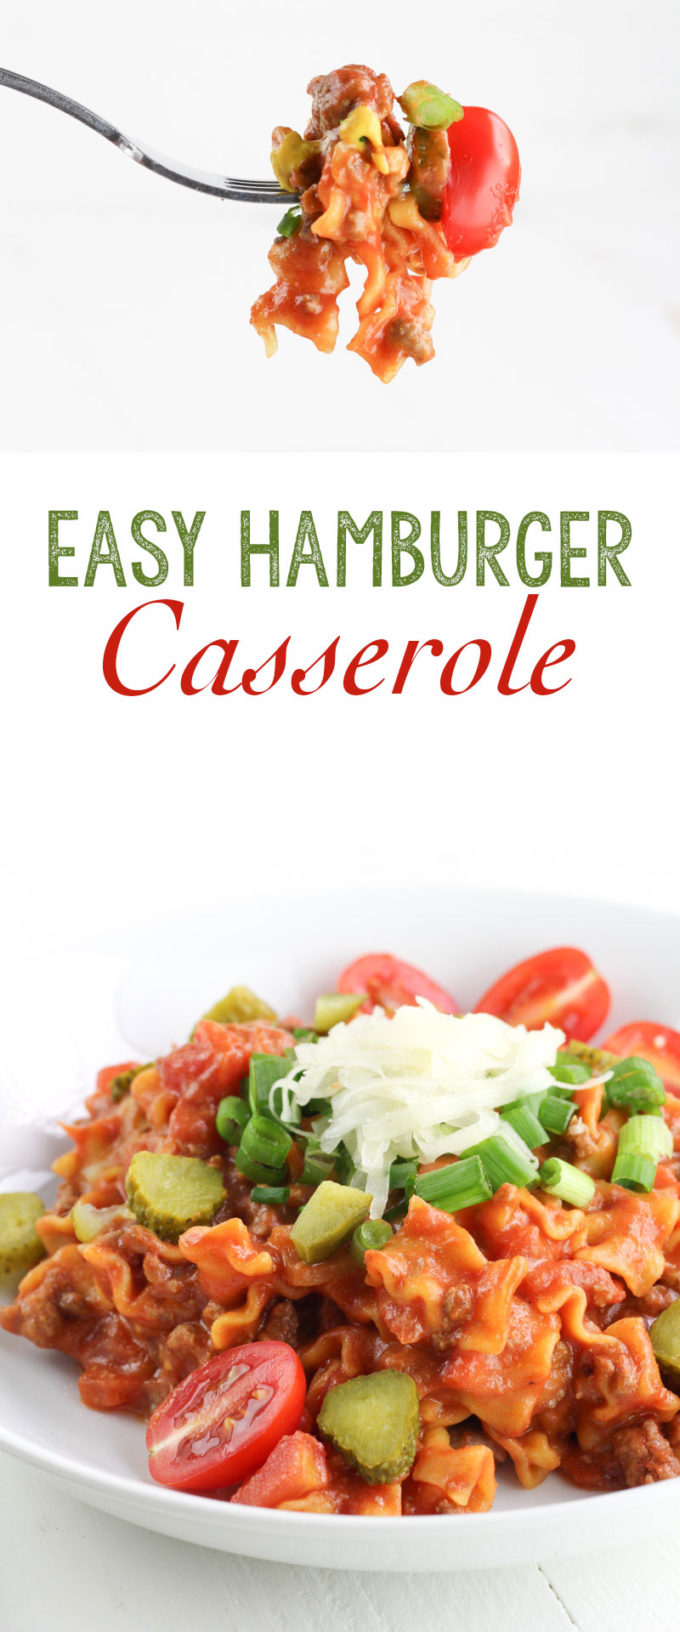 Easy Hamburger Casserole: The perfect midweek meal solution!